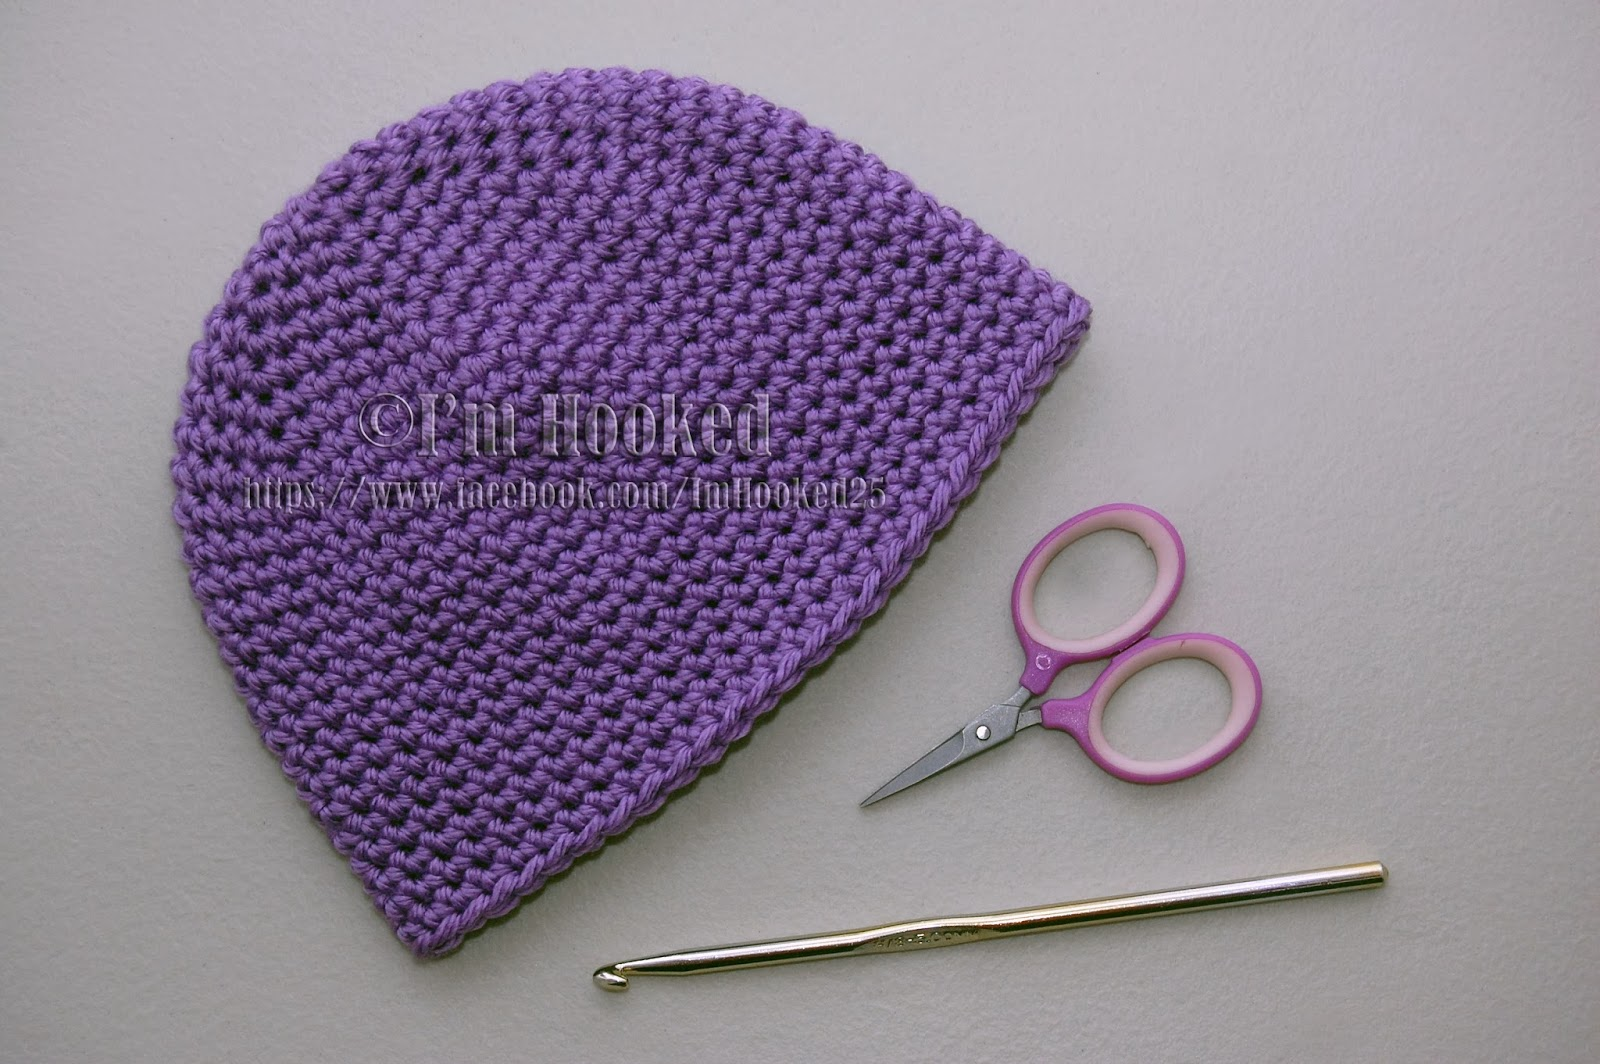 Crochet Basic Beanie Hat Pattern : Basic Crochet Pattern images